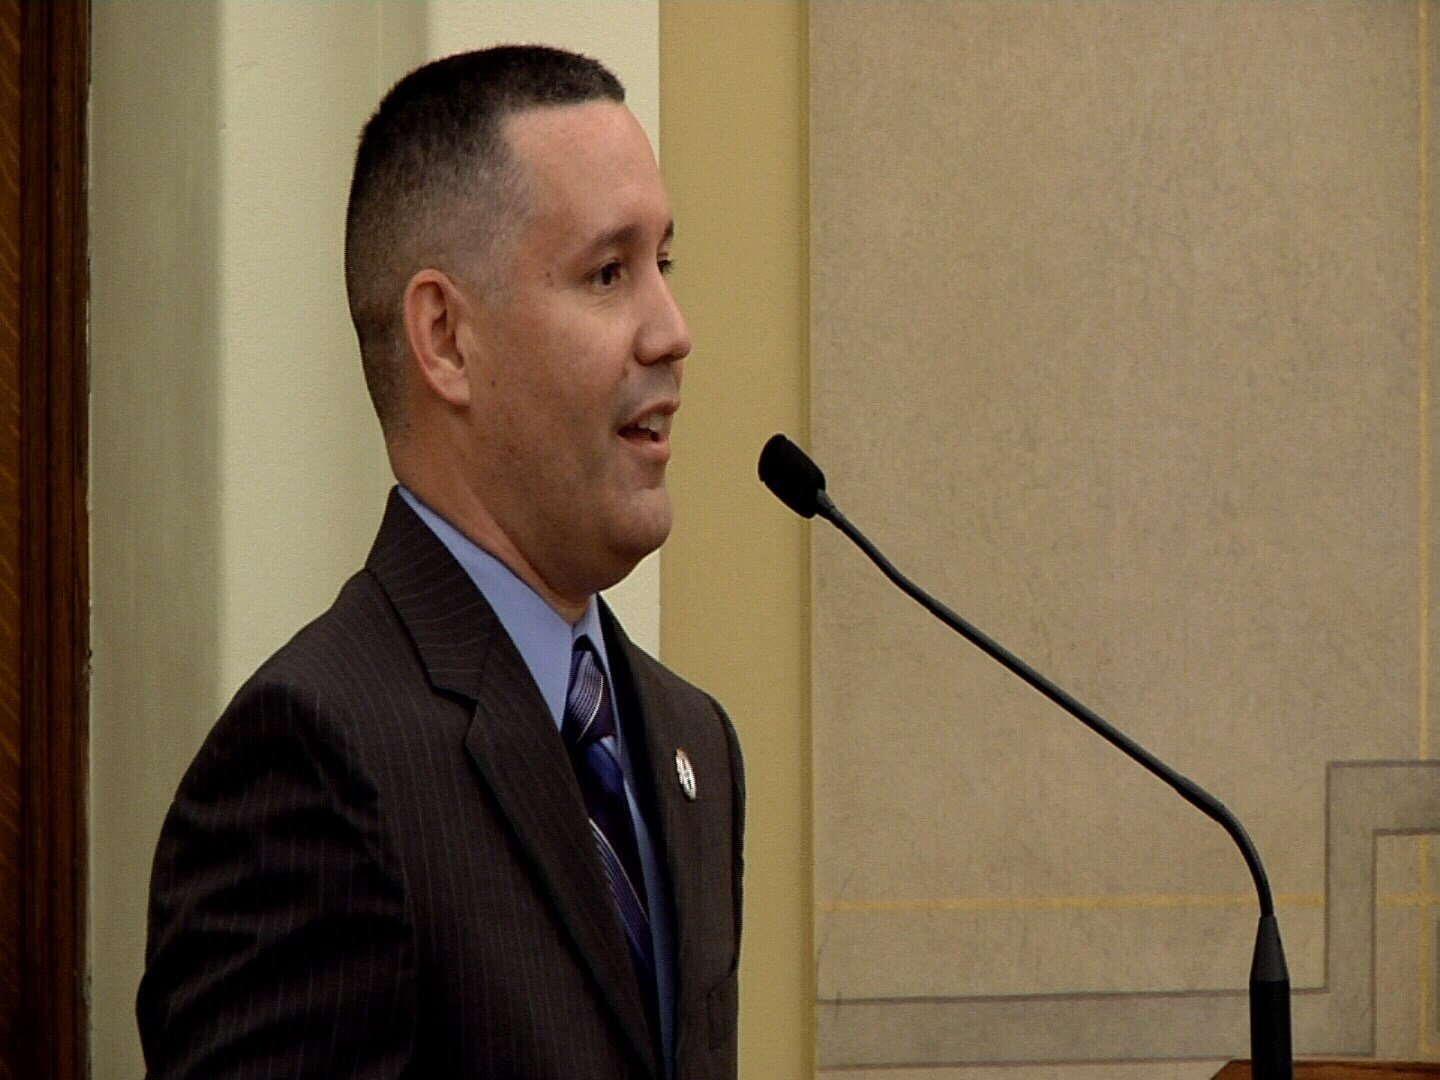 Sgt. 1st Class Eddie Medina greets the Pueblo County Board of Commissioners on the first day of his new fellowship